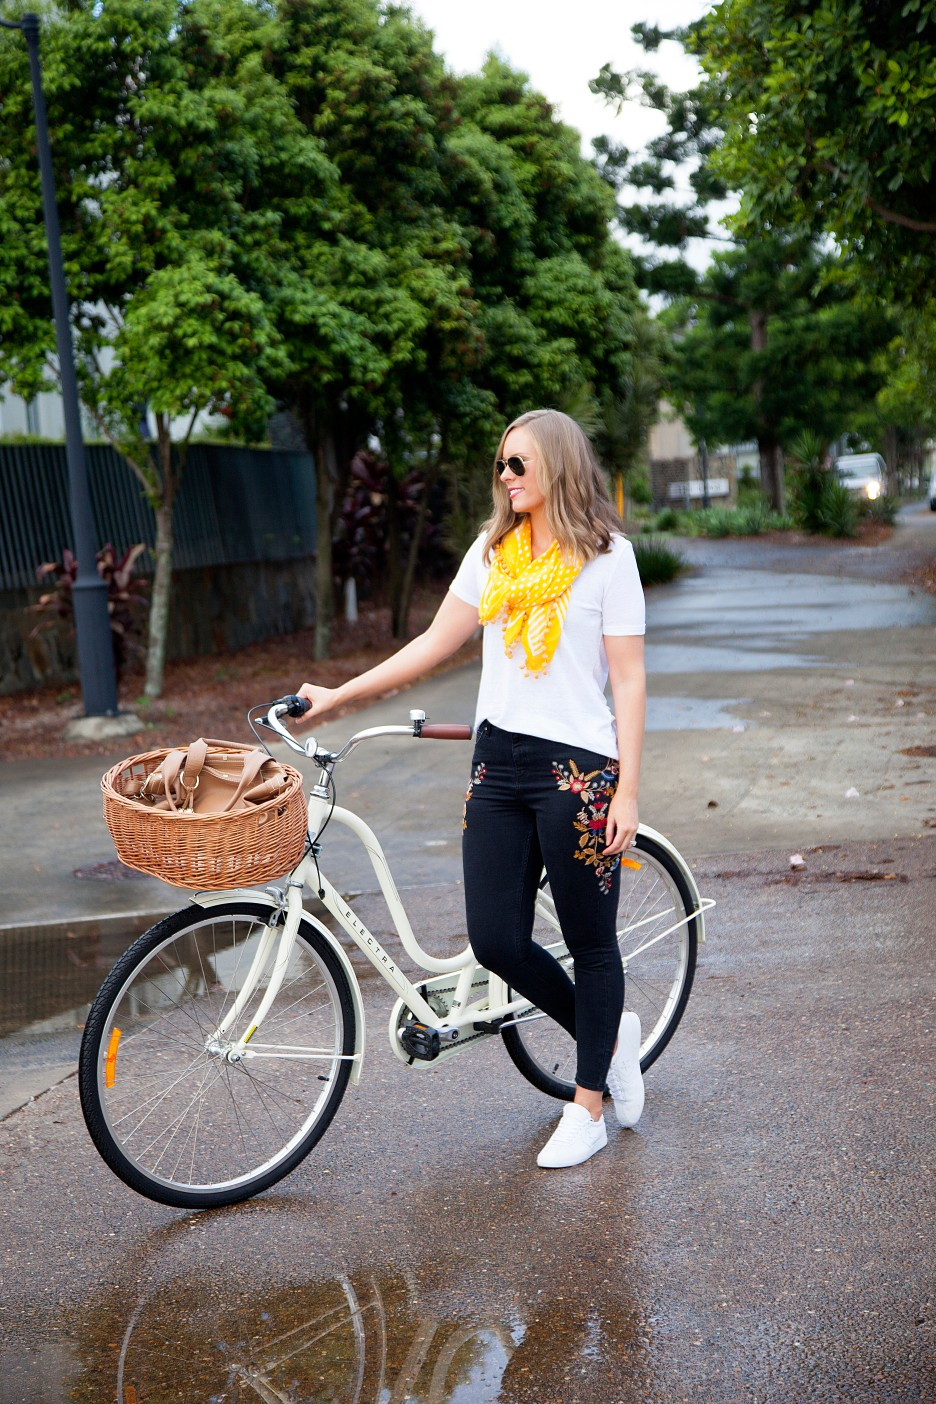 casual outfit ideas embroidered jeans and white tee marigold trend fashion blogger cute cream bike with basket electra cruiser bike lauren slade style elixir blog 9